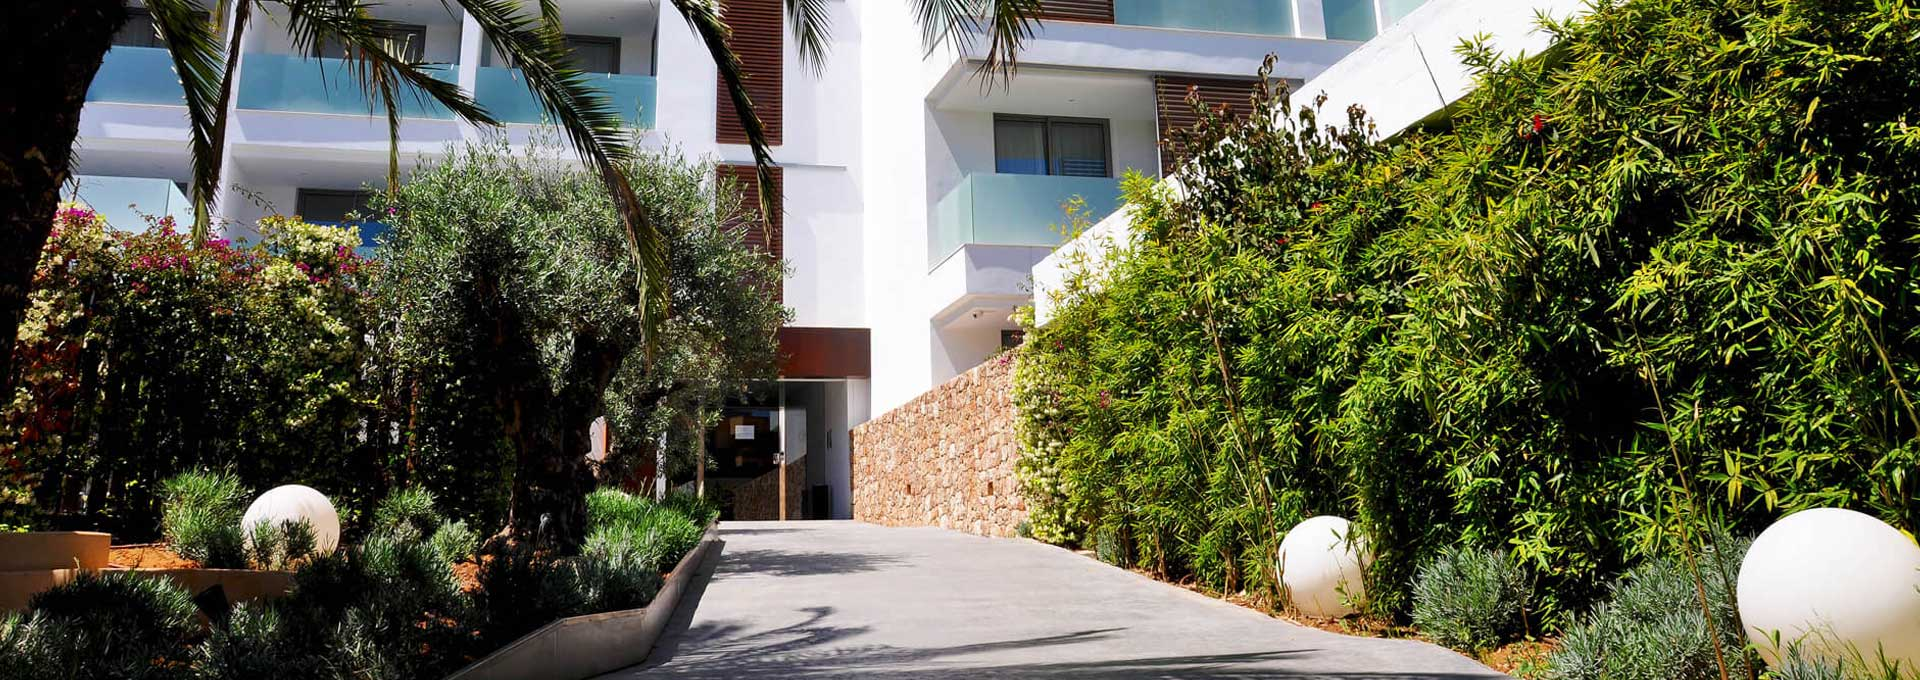 Apartments in Figueretas, Ibiza | Apartments B Llobet